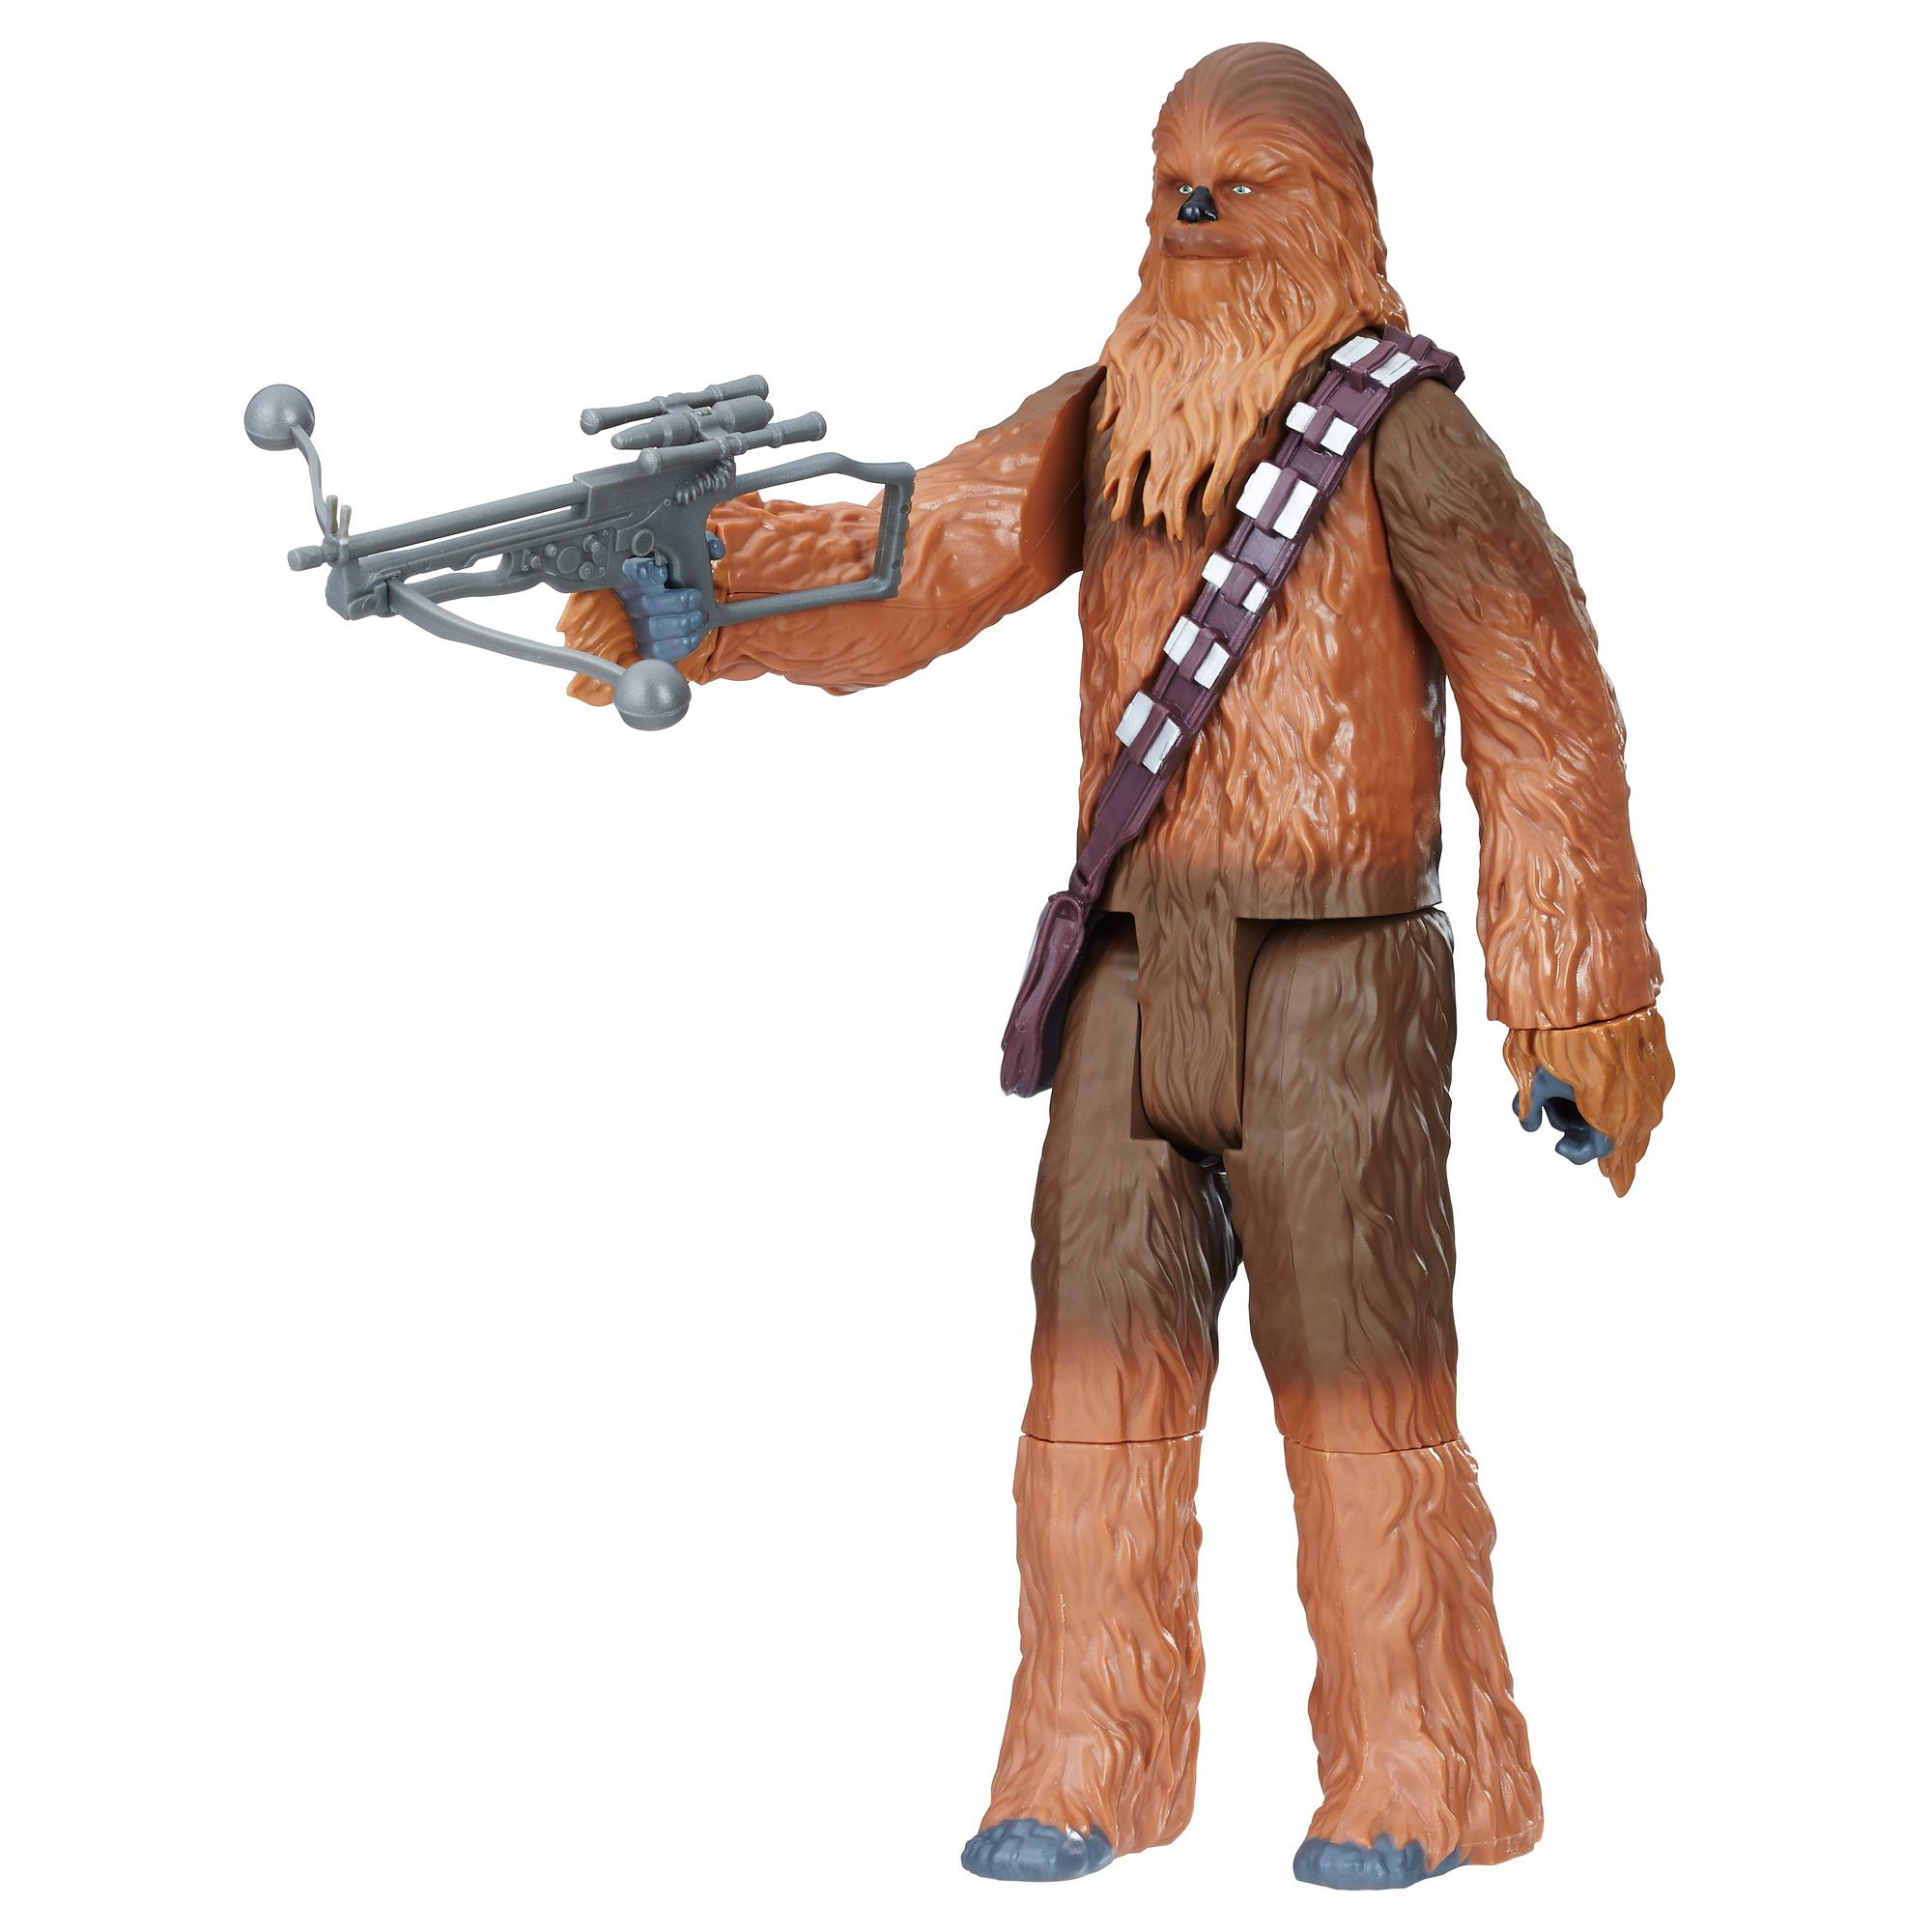 Solo: A Star Wars Story 12-inch-scale Chewbacca Figure